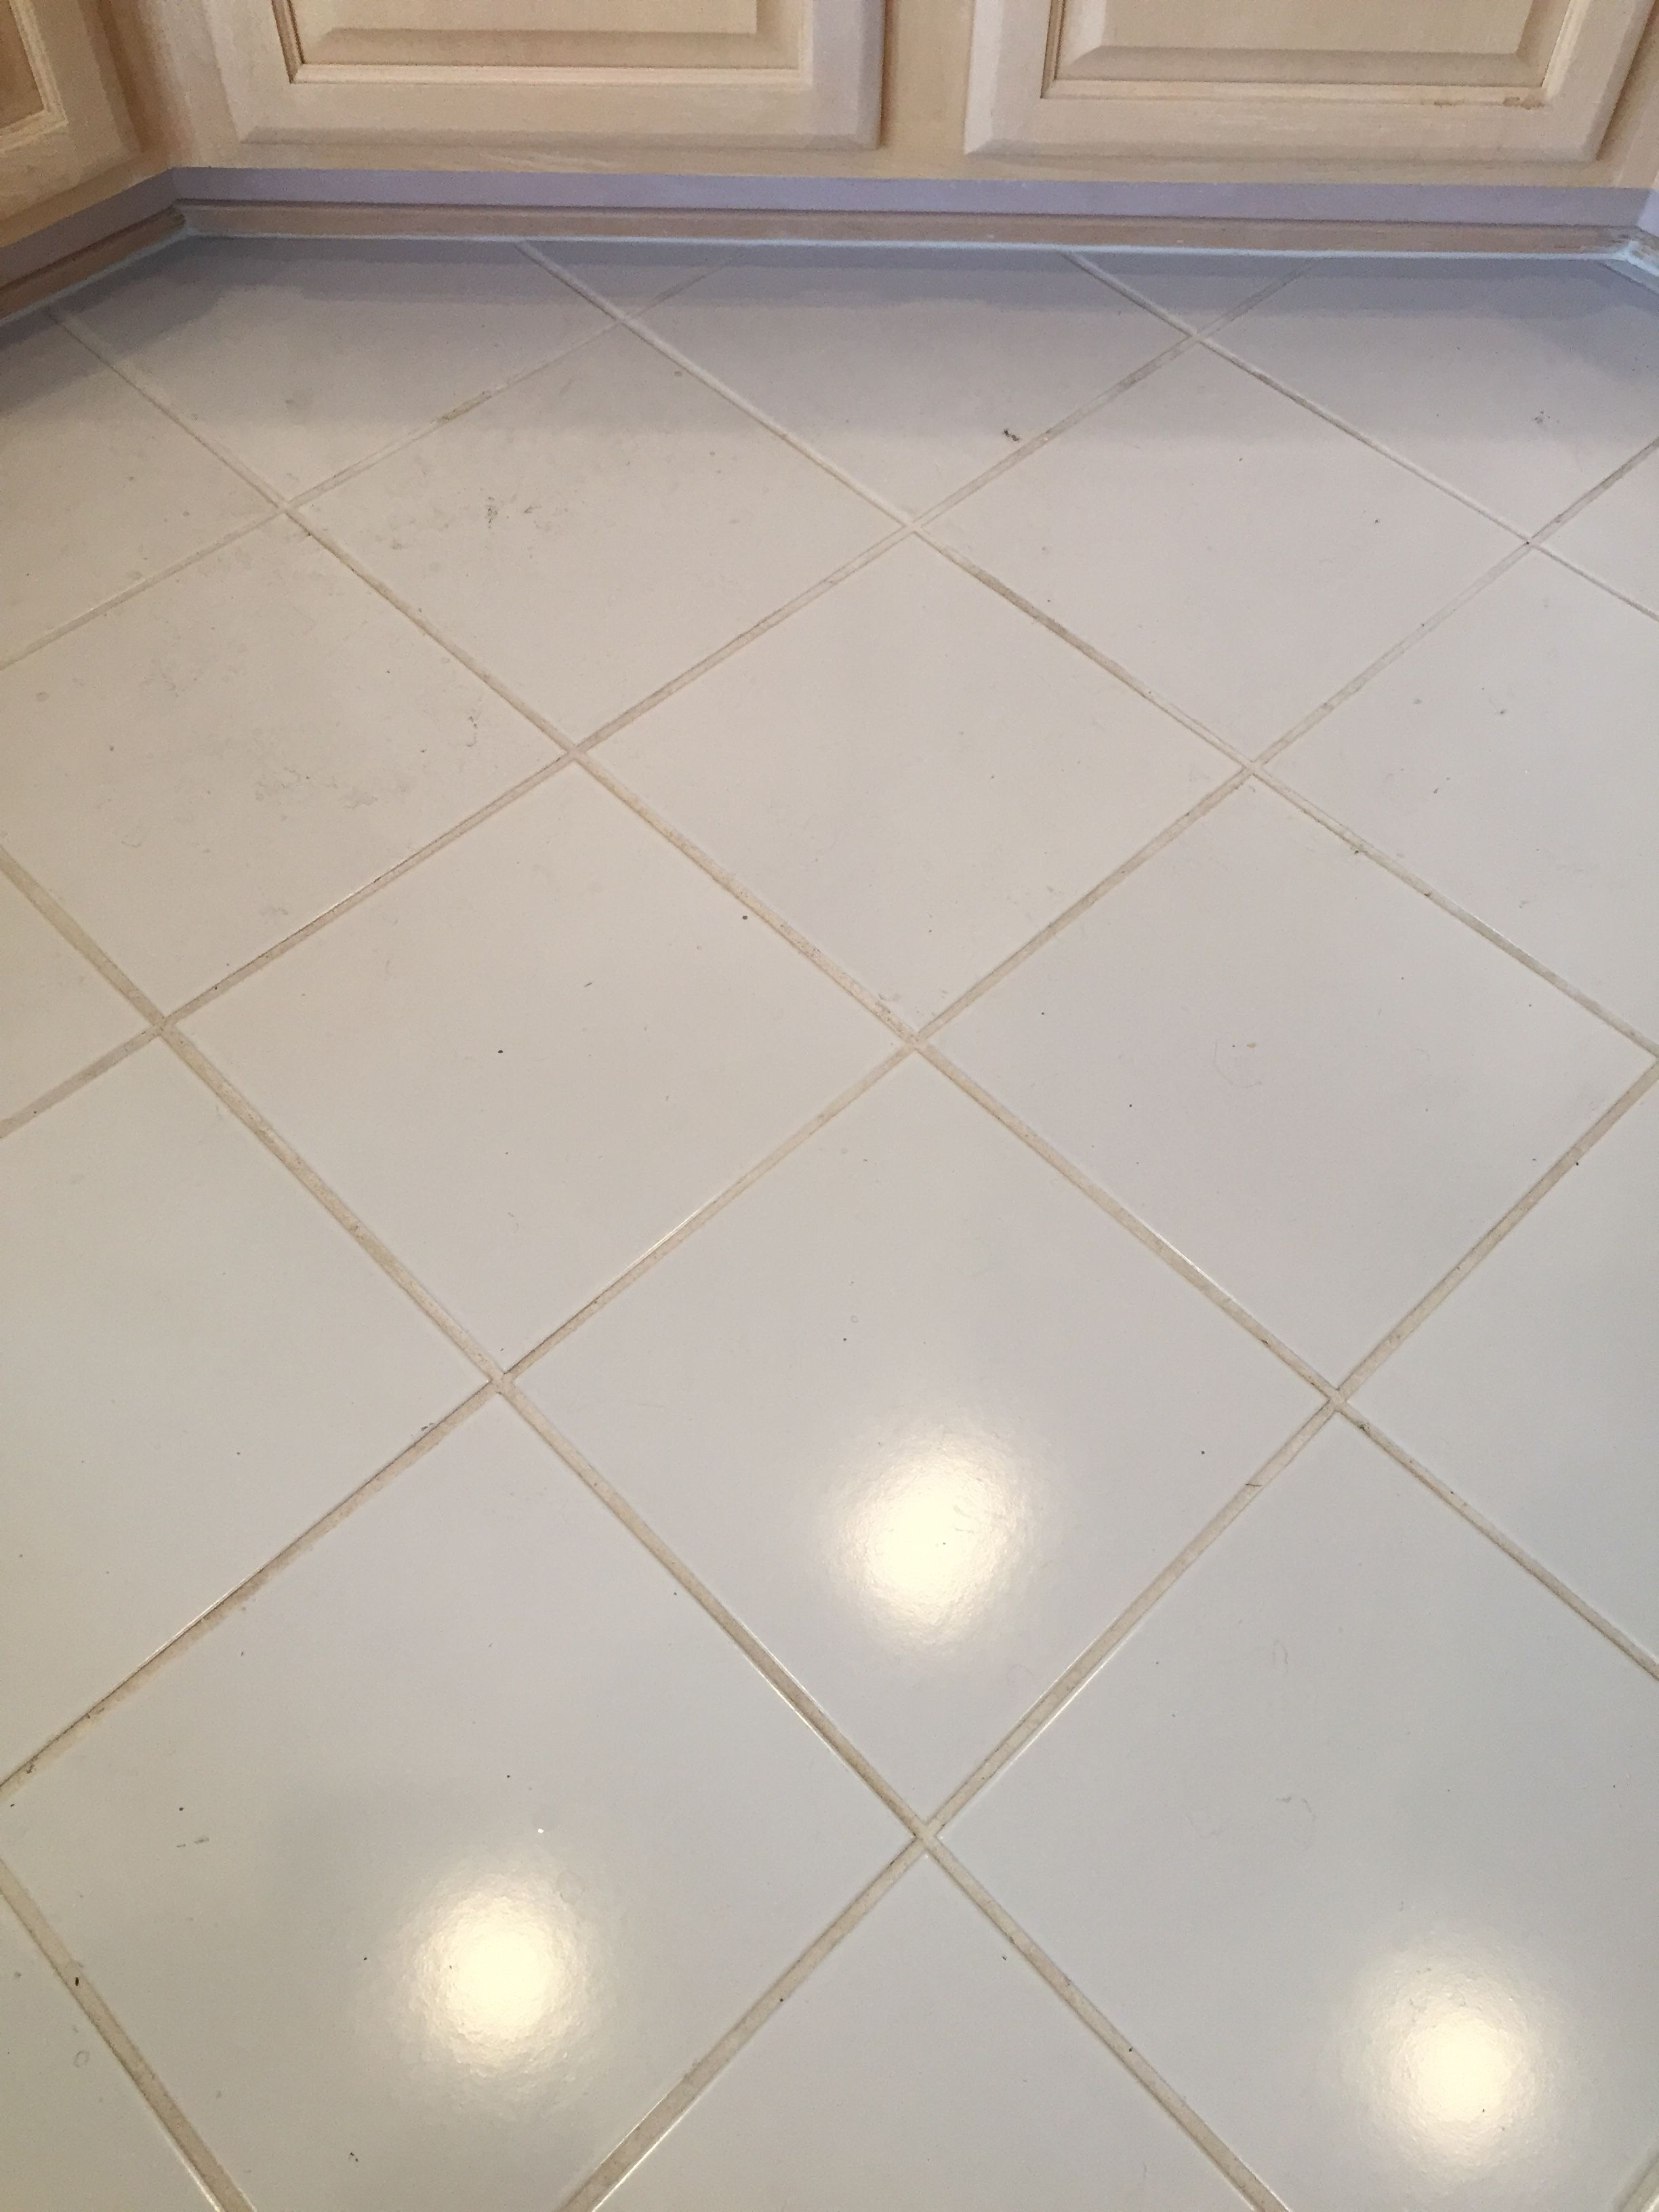 Sealing Porcelain Floor Tiles Before Grouting